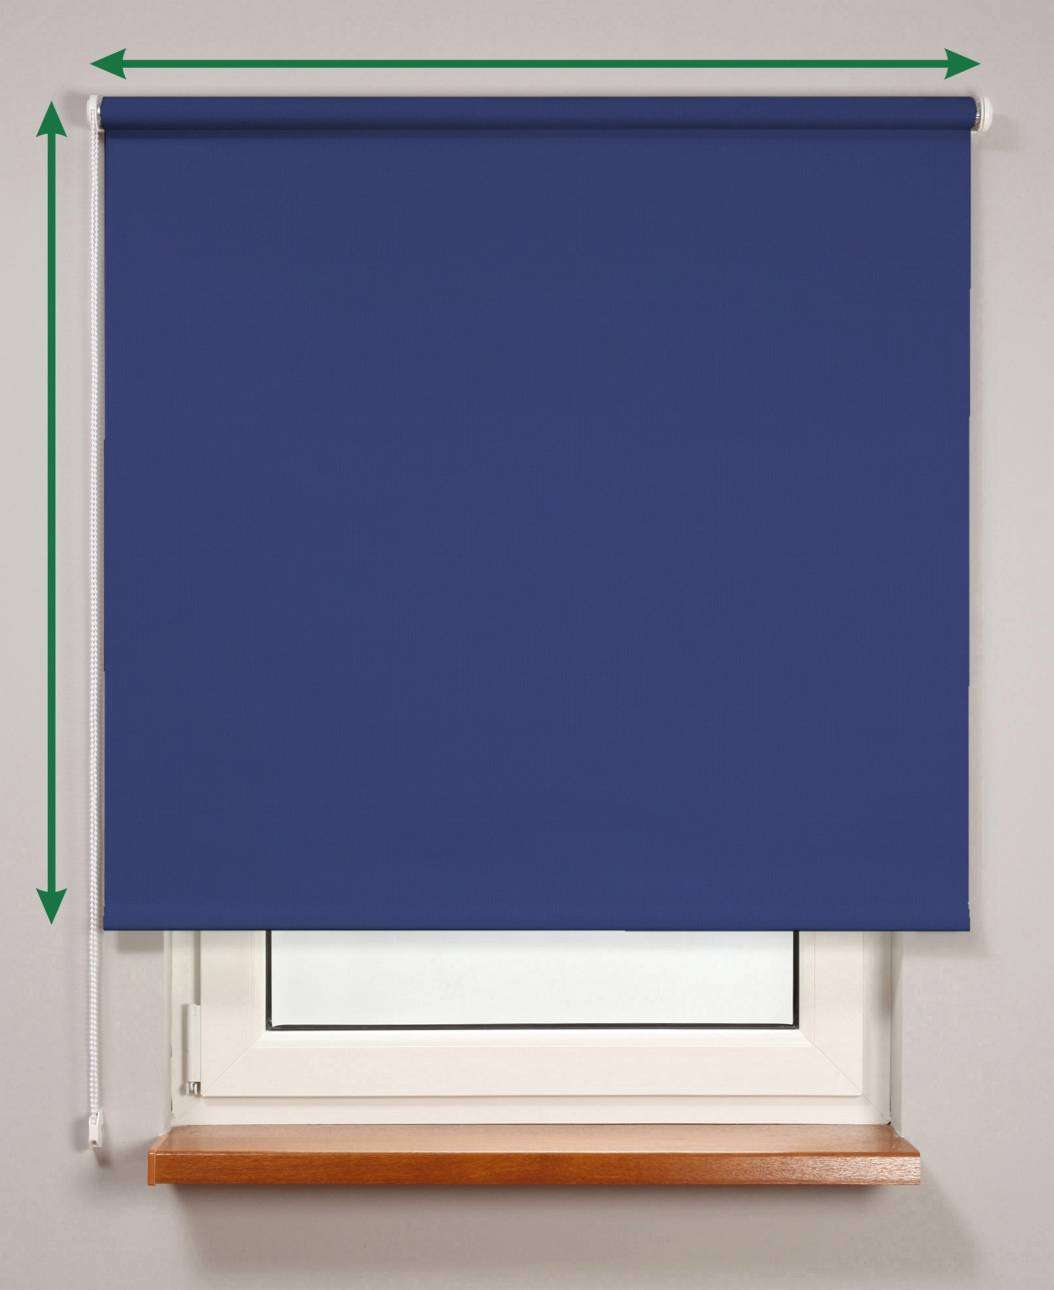 Blackout roller blind  in collection Roller blind blackout, fabric: 10369